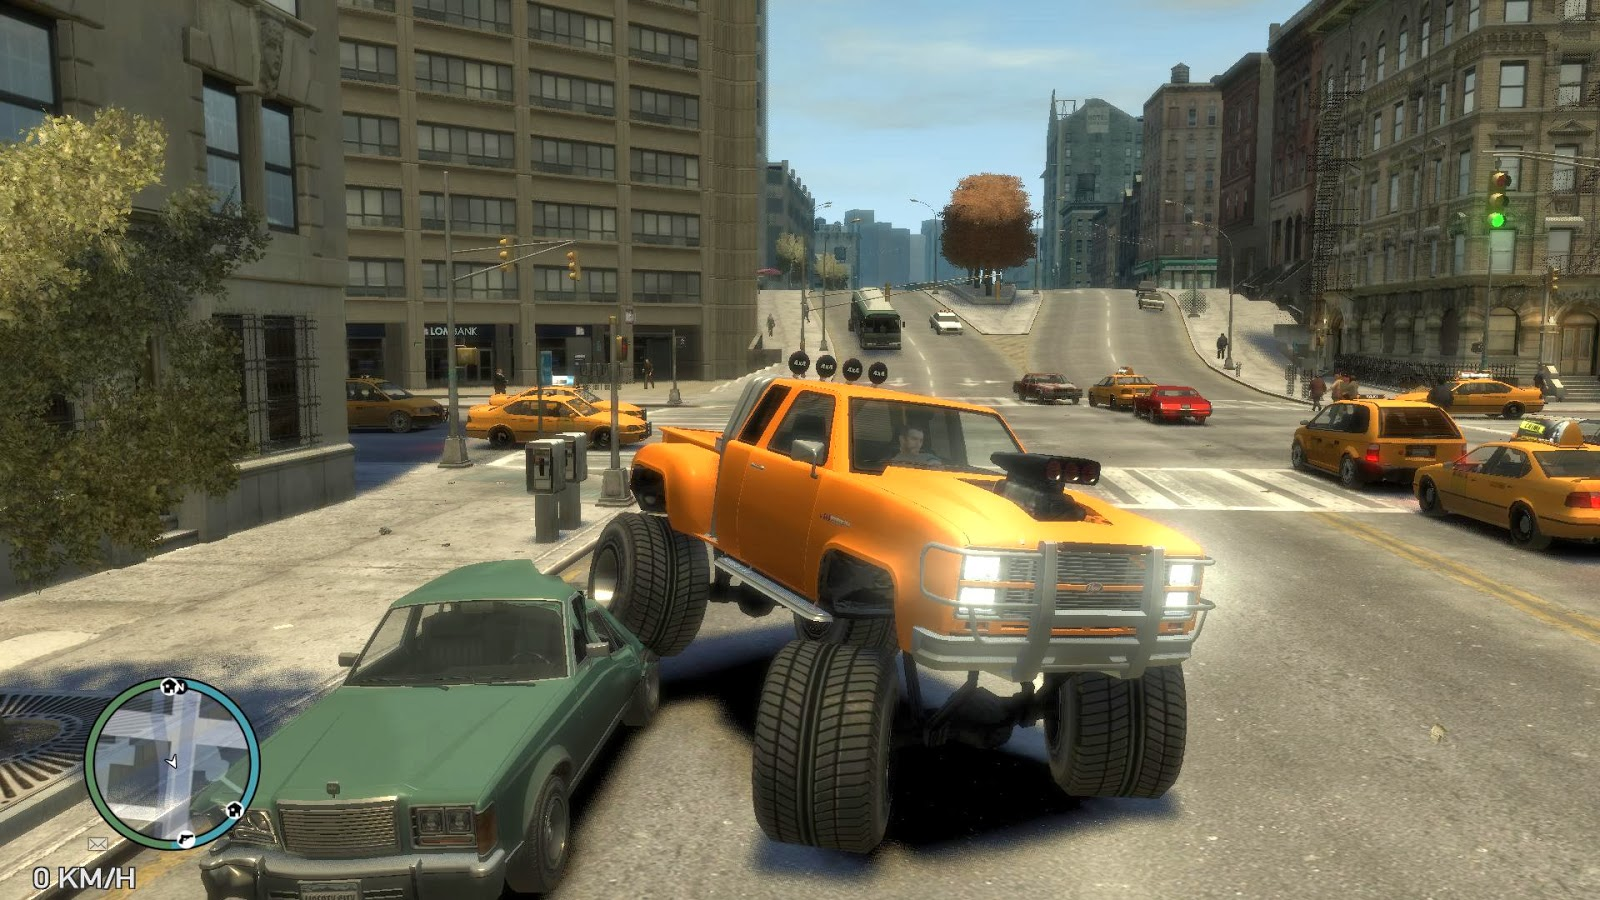 Grand Theft Auto IV Download For Pc Free Full Game - Art4haxk